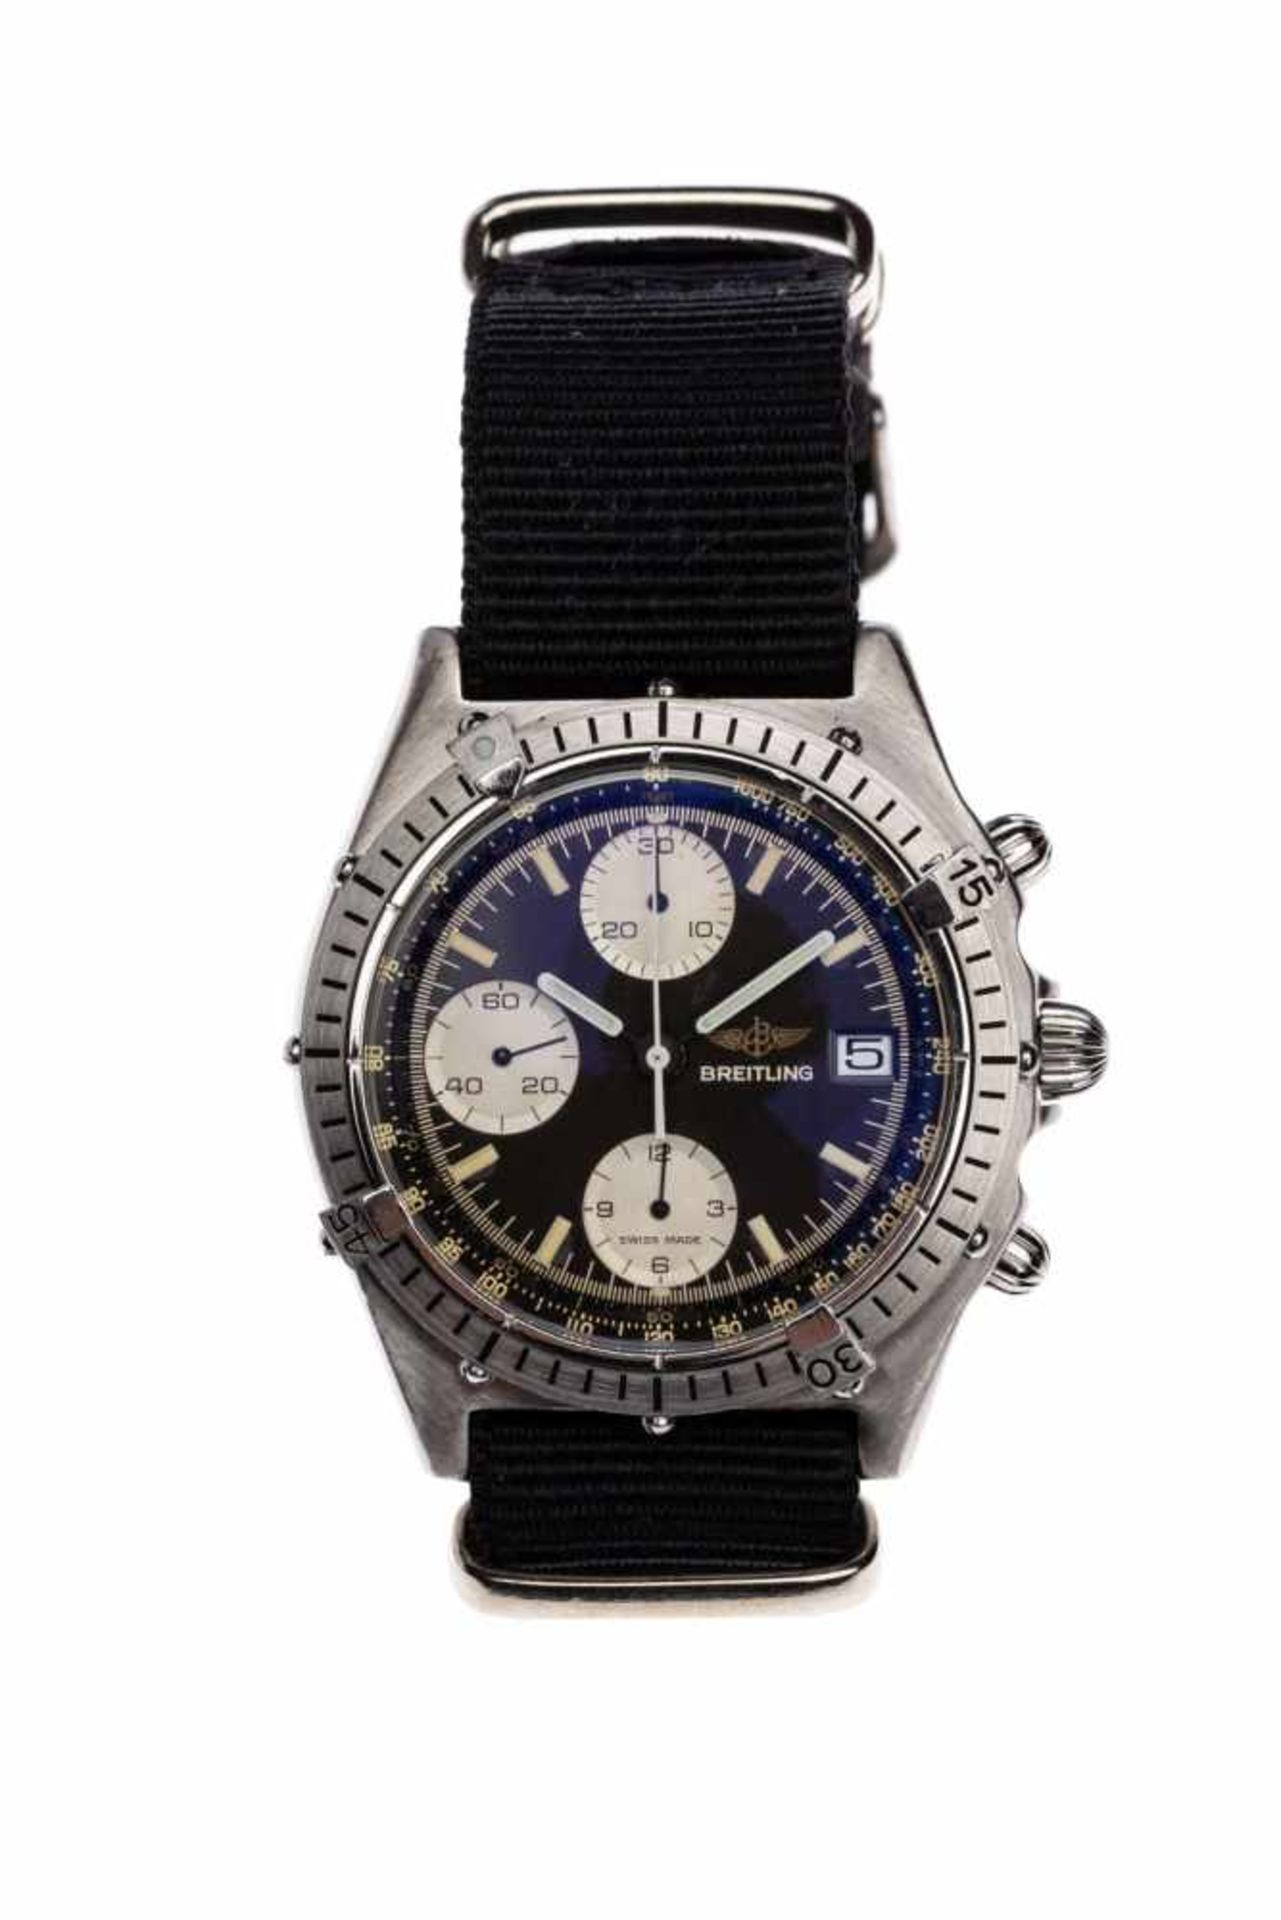 Los 21 - Breitling ChronomatUnisex watch Breitling Chronomat in steel from the 90s, automatic movement with